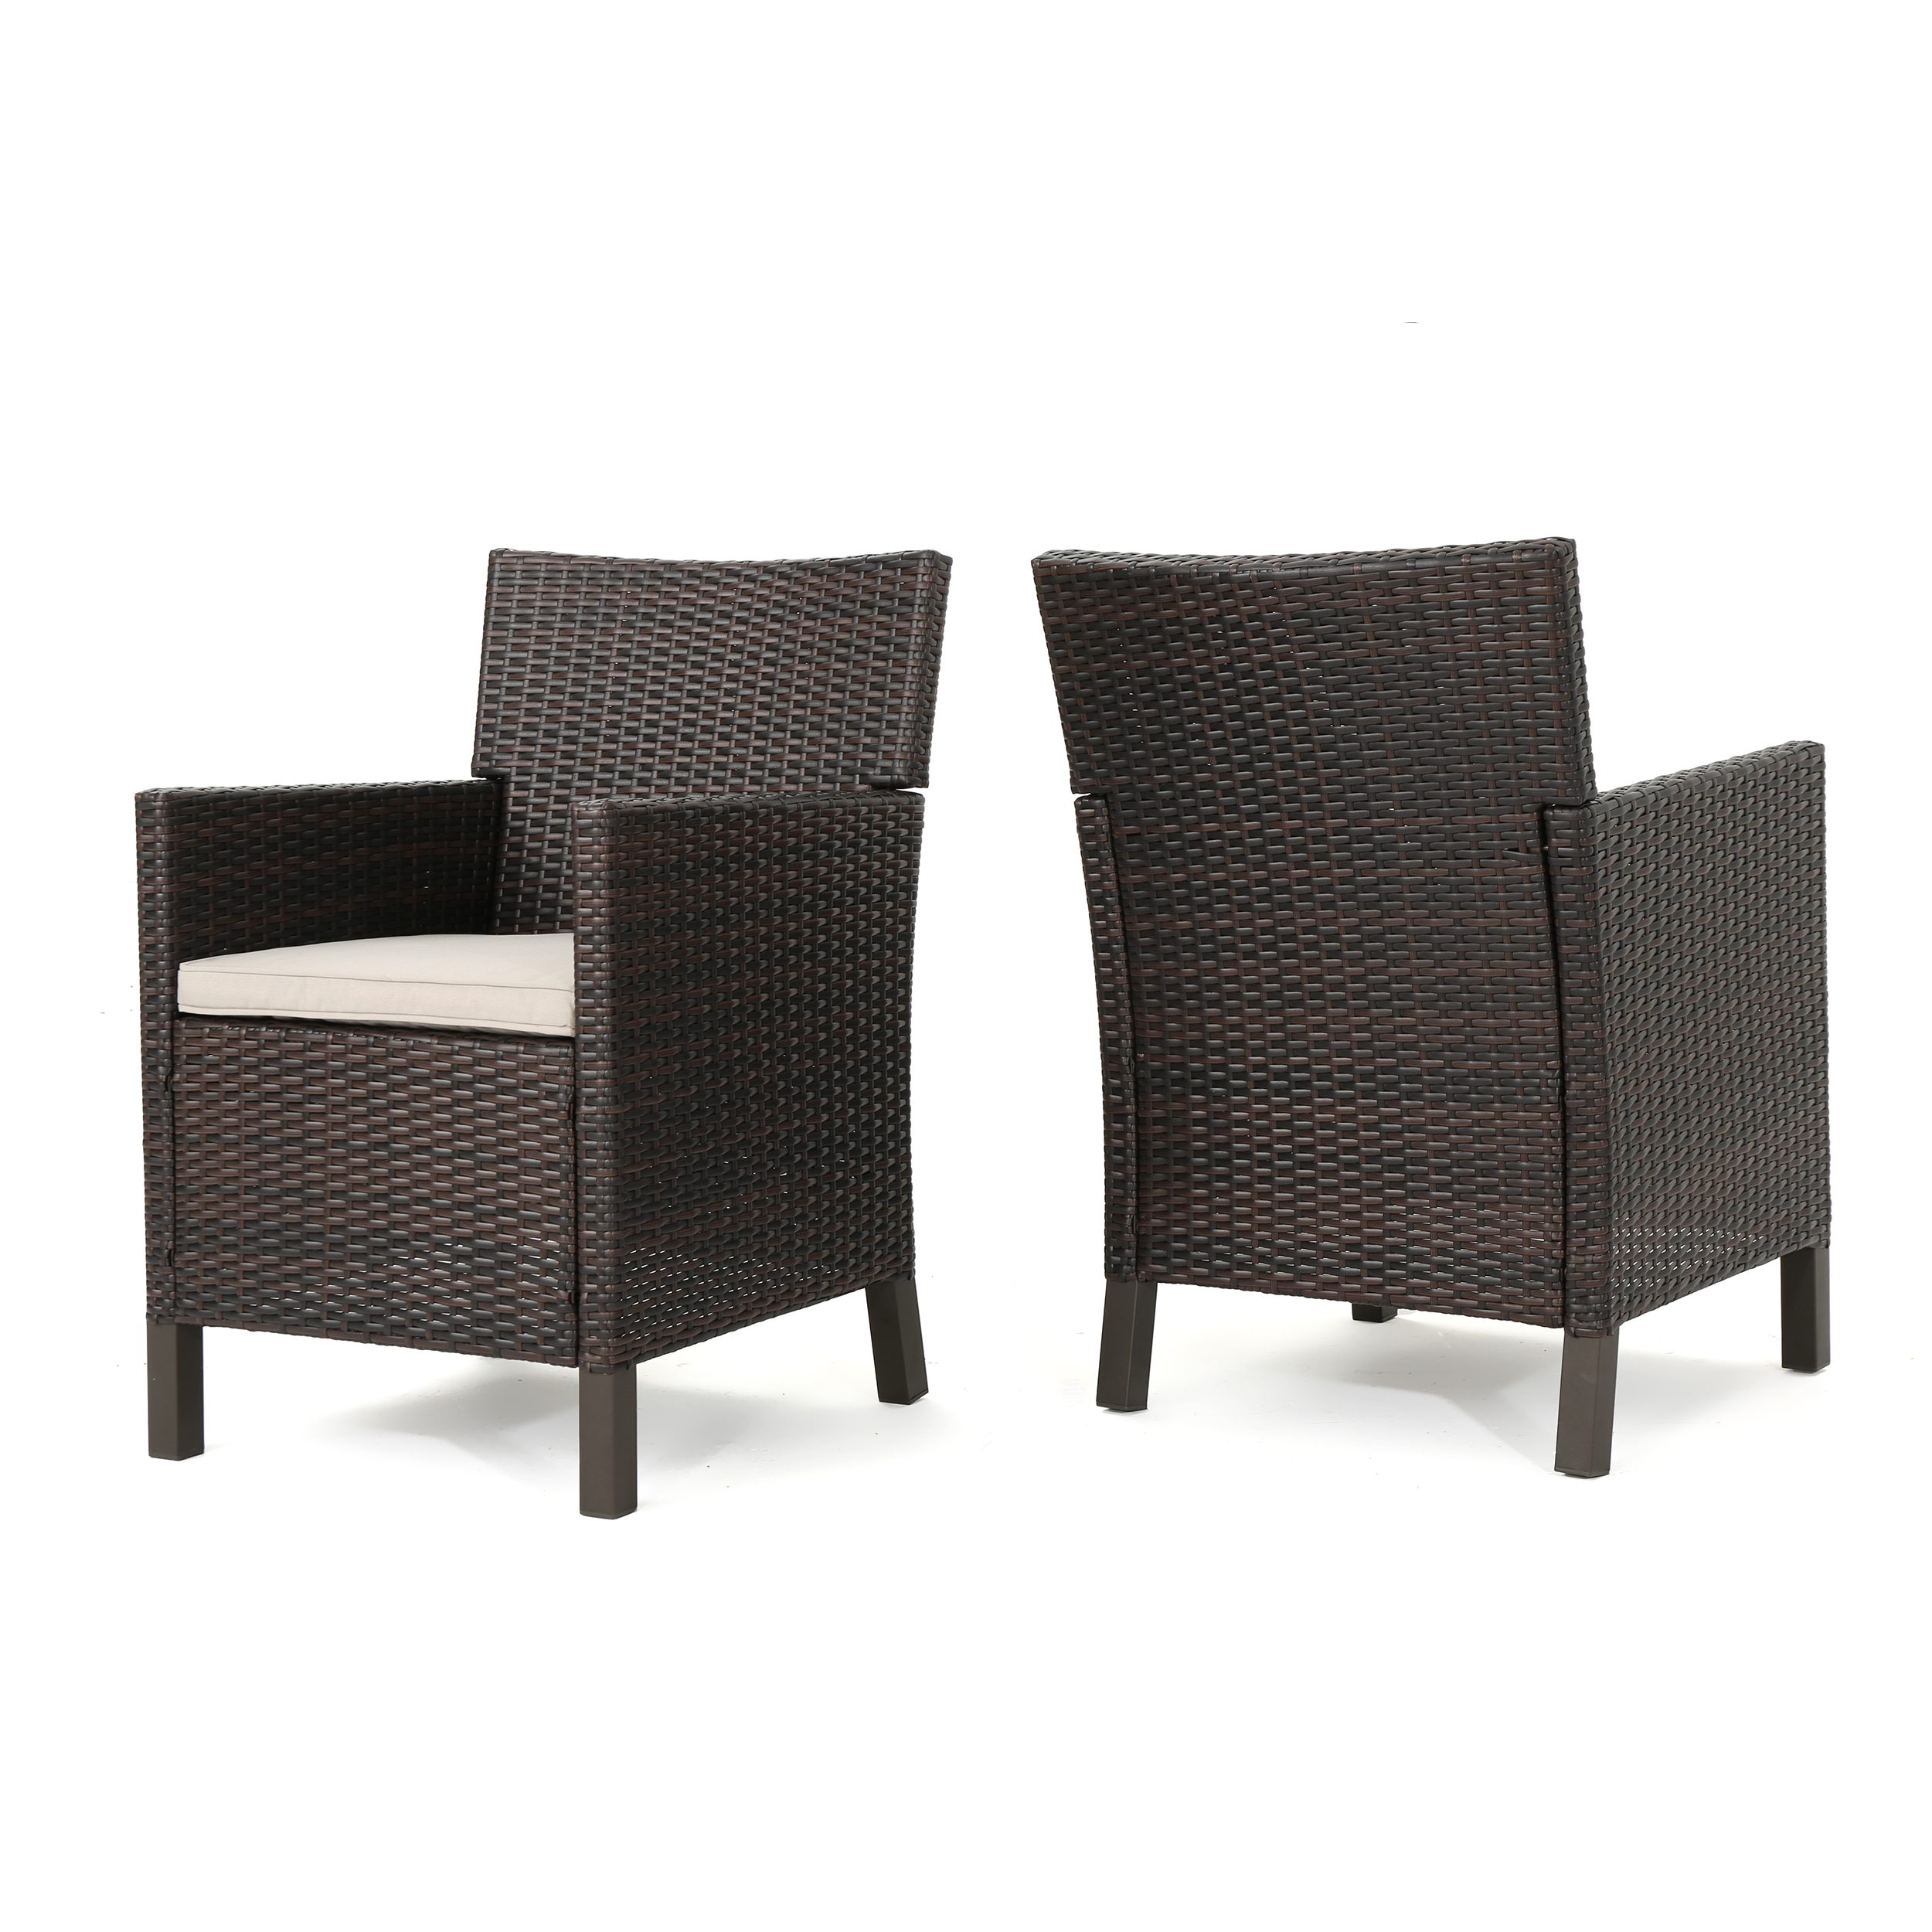 Cyrus Outdoor Wicker Dining Chairs with Water Resistant Cushions, Set of 2, Multibrown and Light Brown